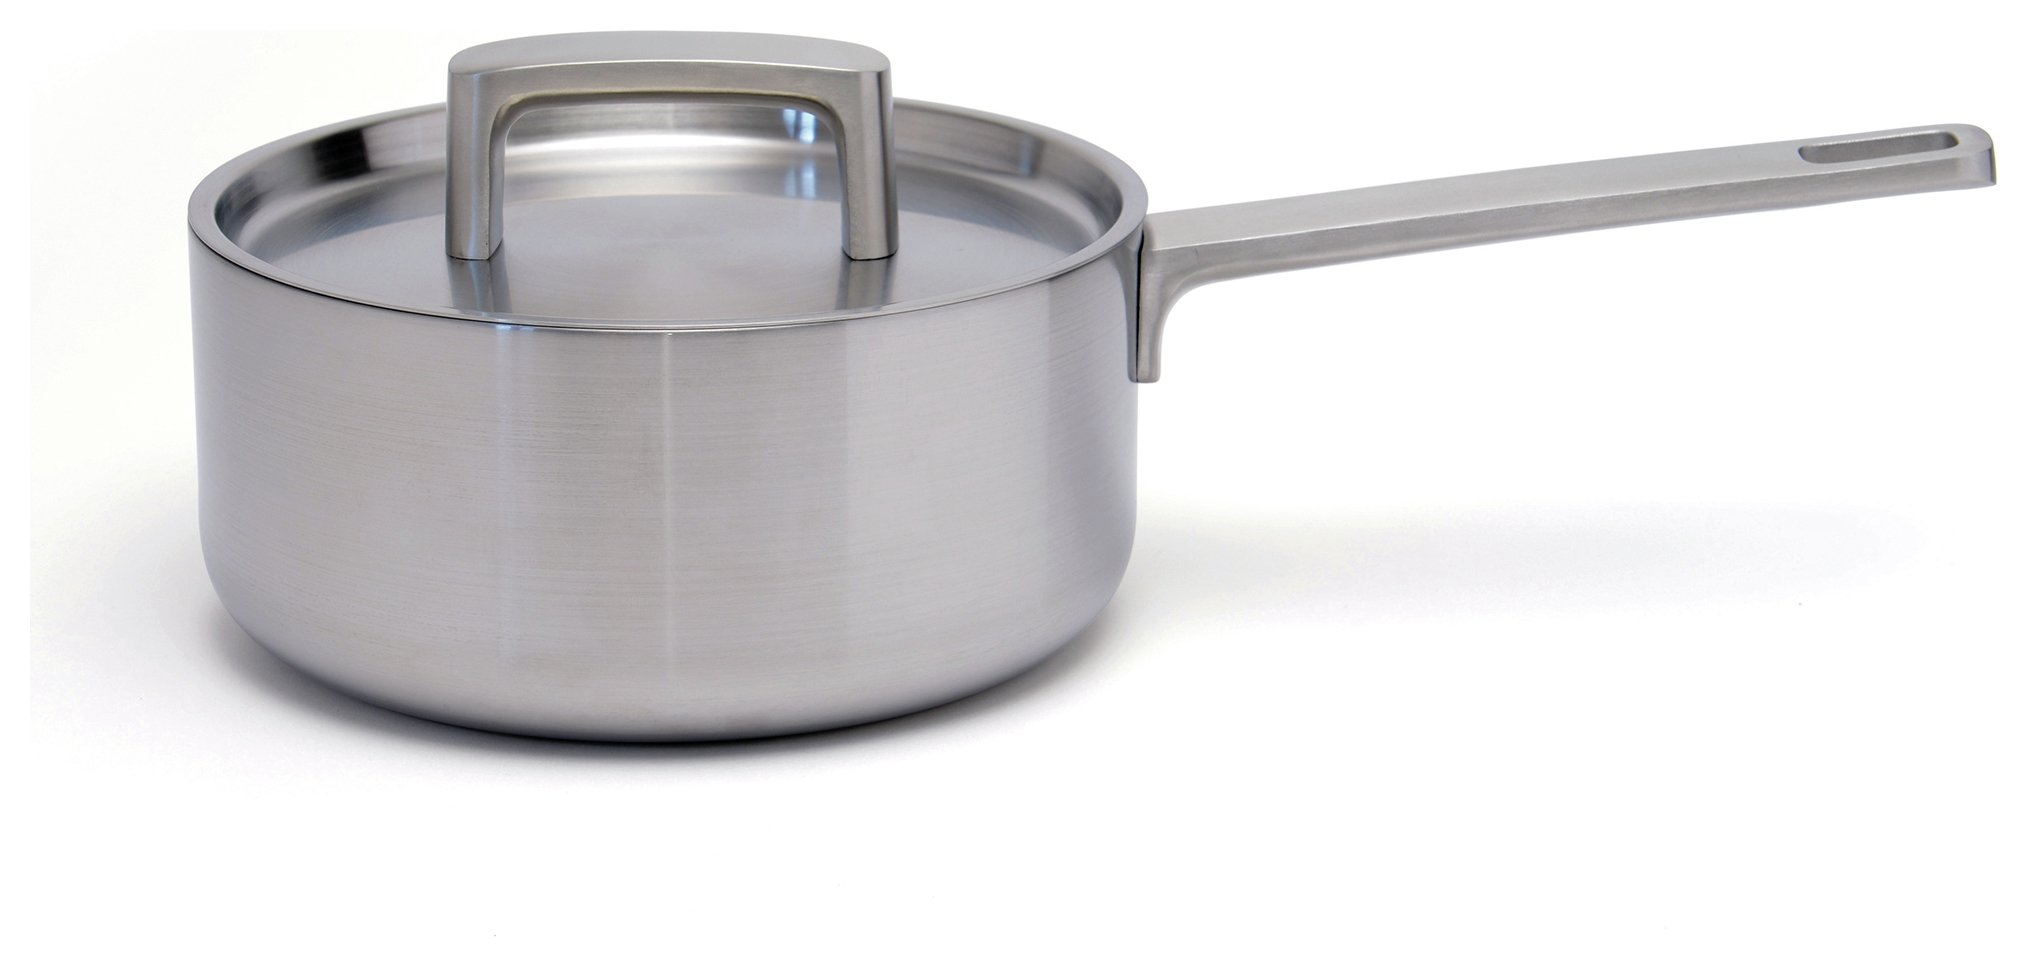 Image of BergHOFF 18cm Stainless Steel Saucepan with Lid.